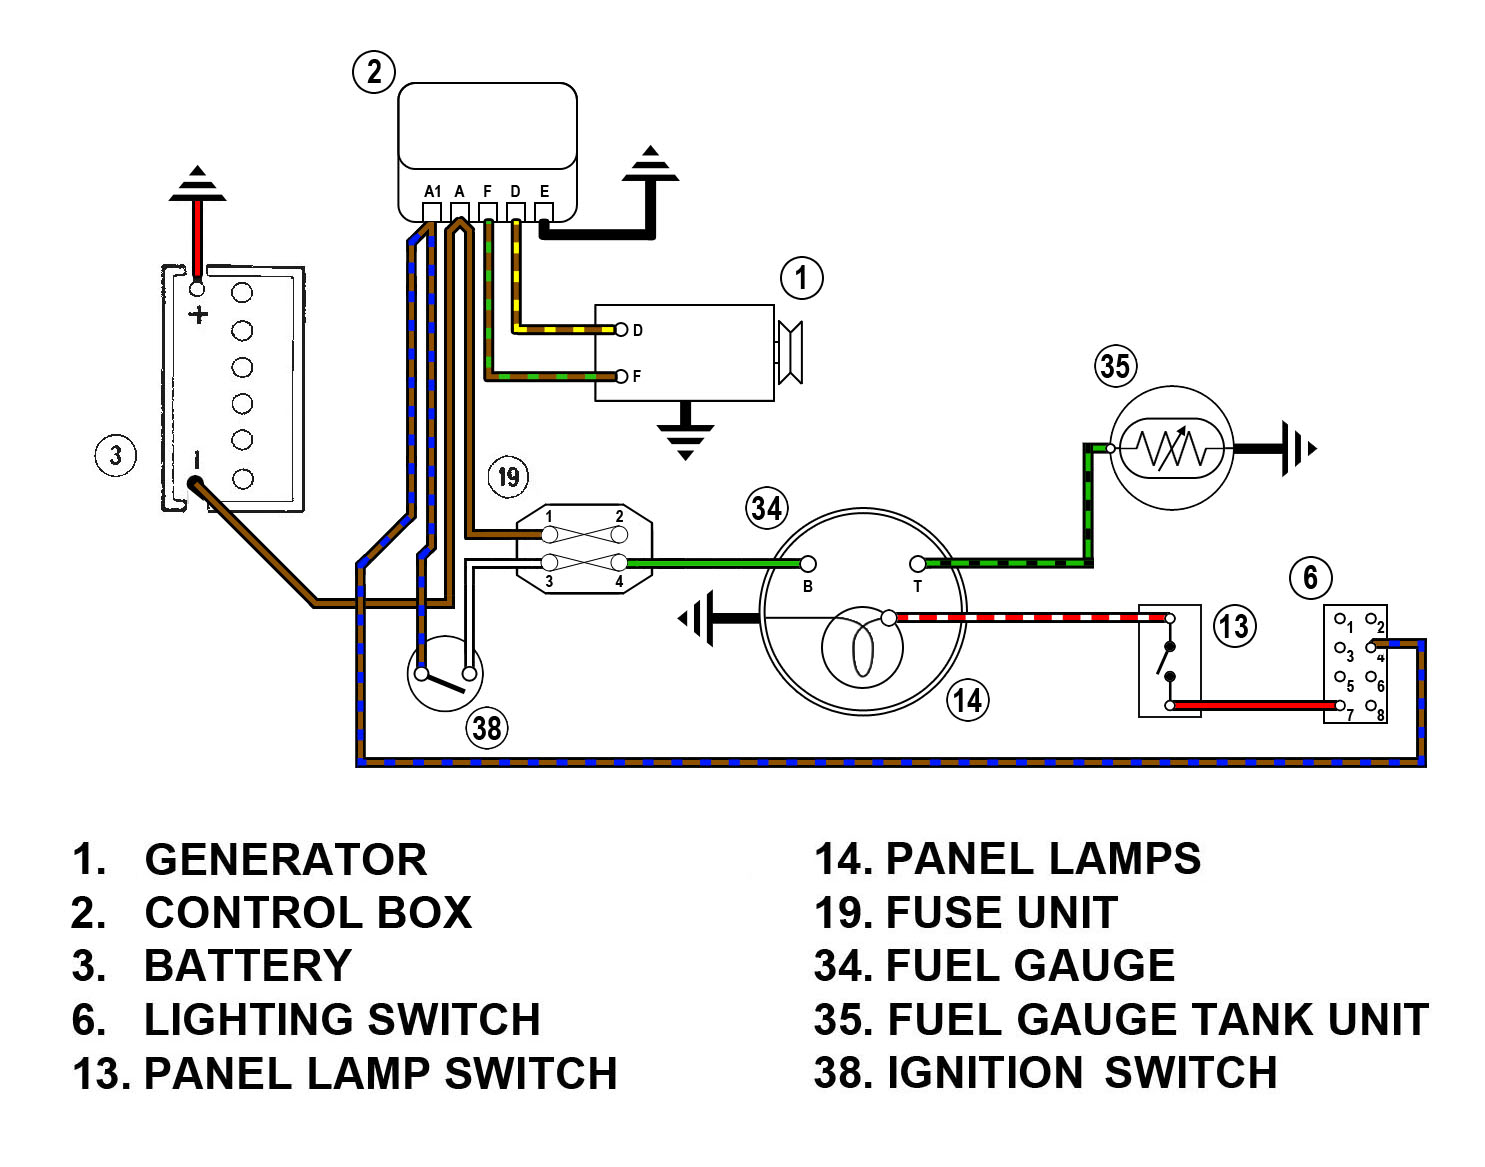 honeywell t651a3018 wiring diagram Download-Honeywell T651a3018 Wiring  Diagram Luxury Equus Fuel Gauge Wiring Diagram. DOWNLOAD. Wiring Diagram ...